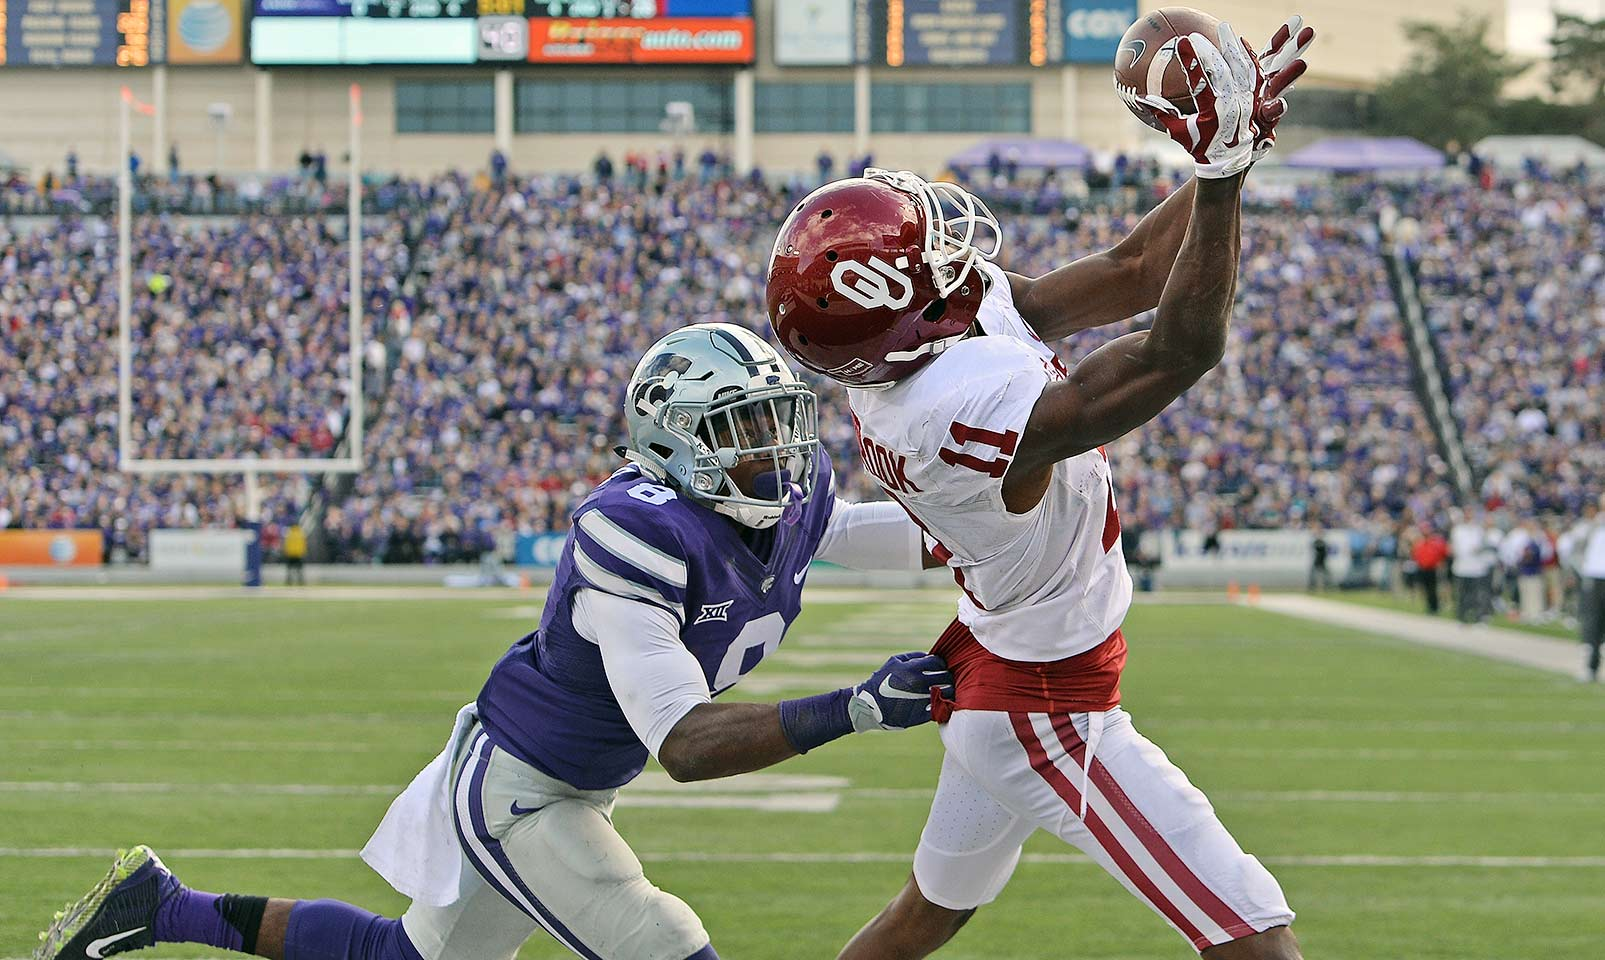 Oklahoma 55, Kansas State 0: The Sooners took out their frustrations from the loss to Texas on the Wildcats, pummeling them for 568 yards of offense while holding them to 110. Baker Mayfield tossed five touchdowns, and Zack Sanchez contributed a pick-six.